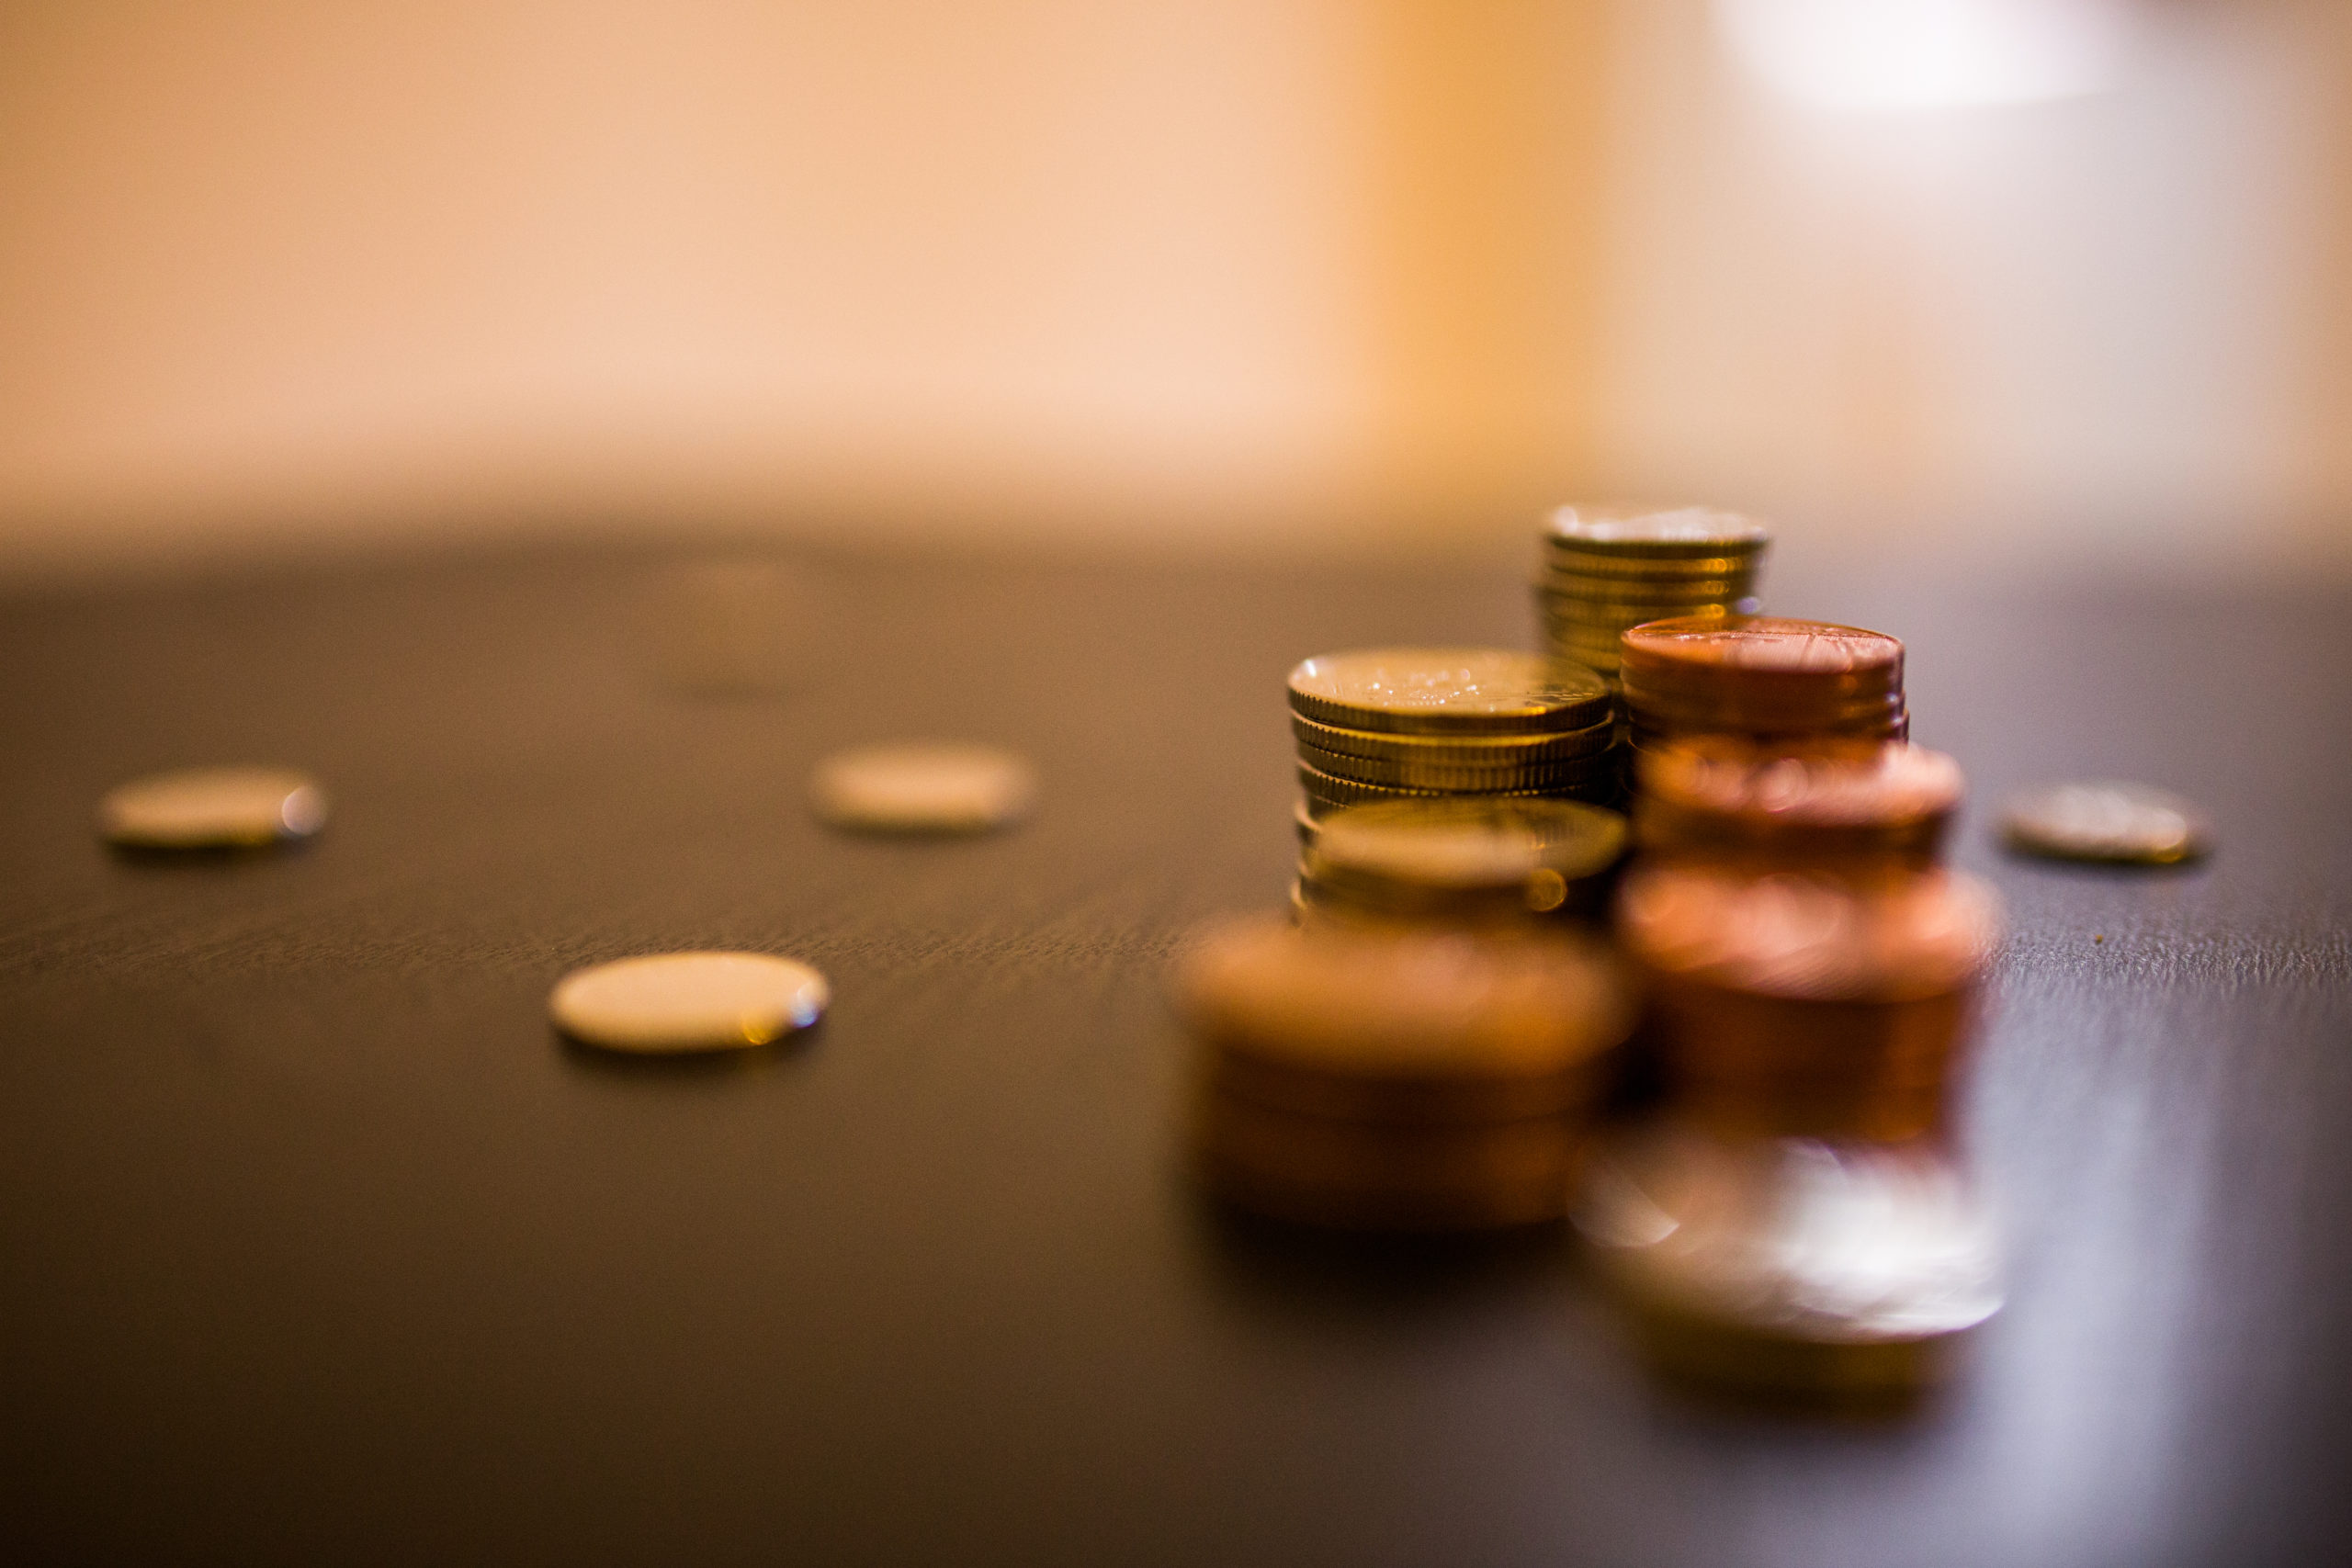 https://jsmelevice.cz/wp-content/uploads/2020/03/Canva-Shallow-Focus-Photography-of-Coins-scaled.jpg